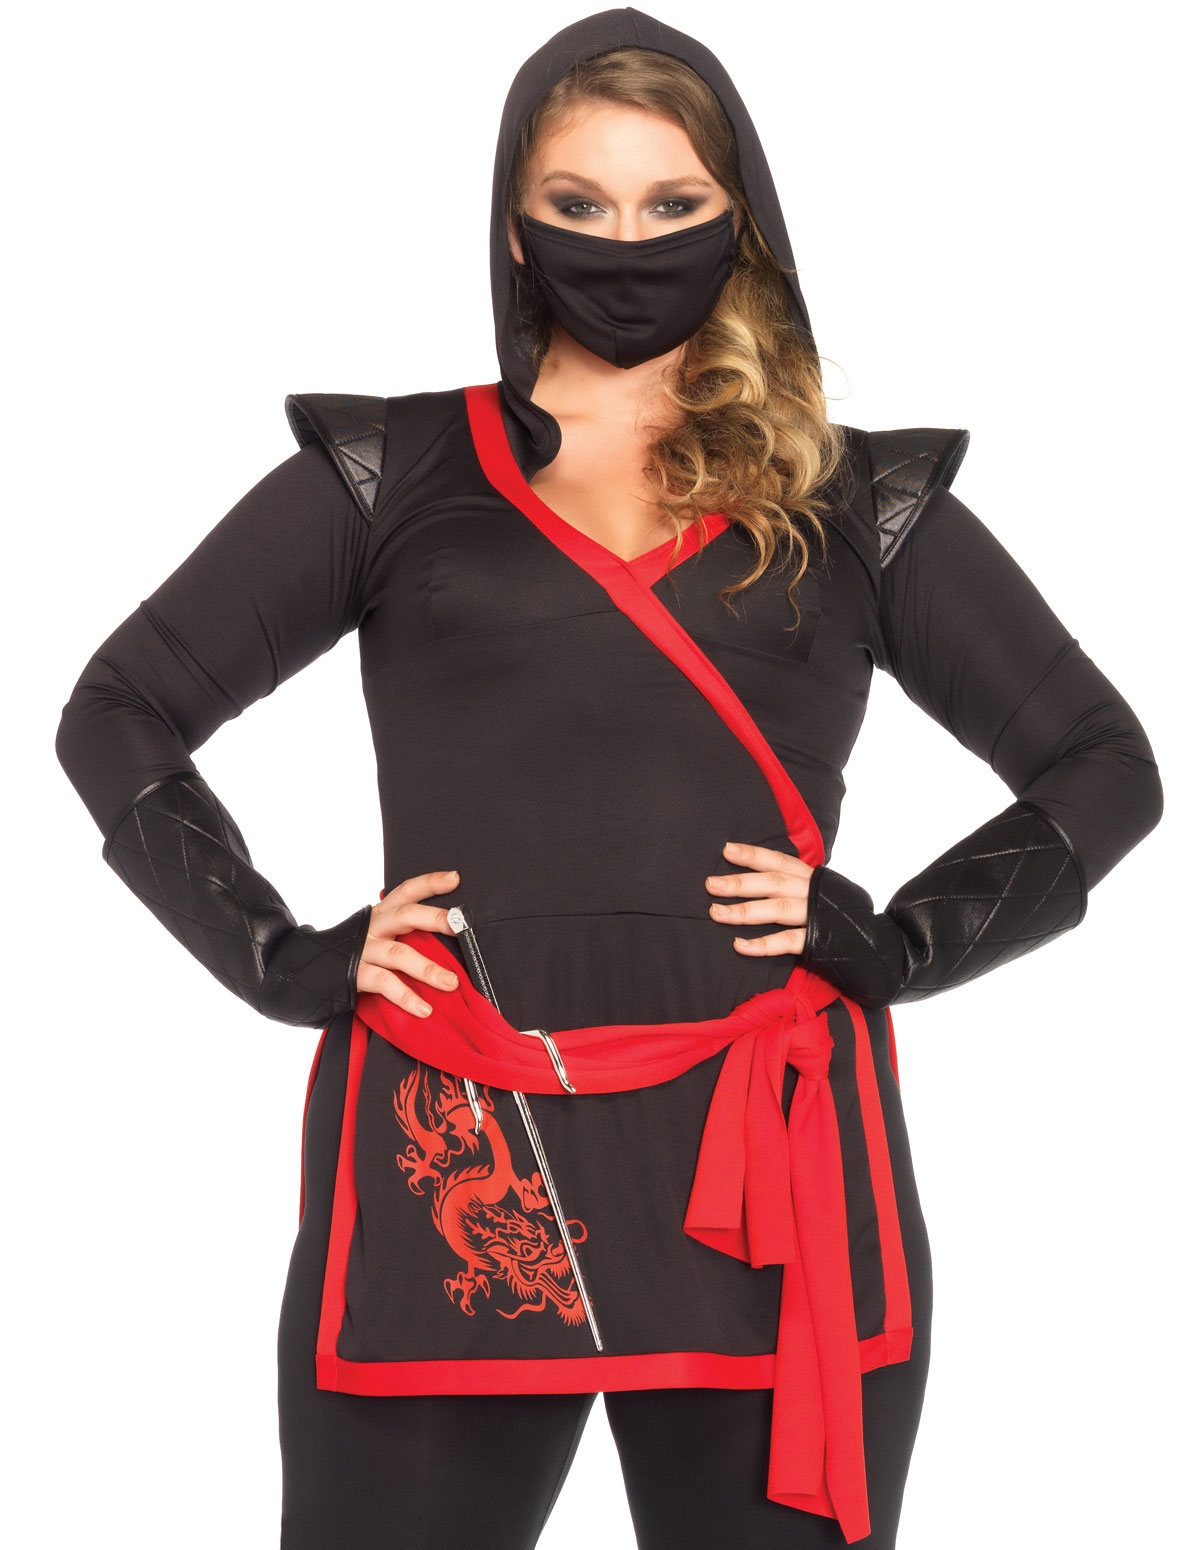 Ninja Assassin Costume - Plus